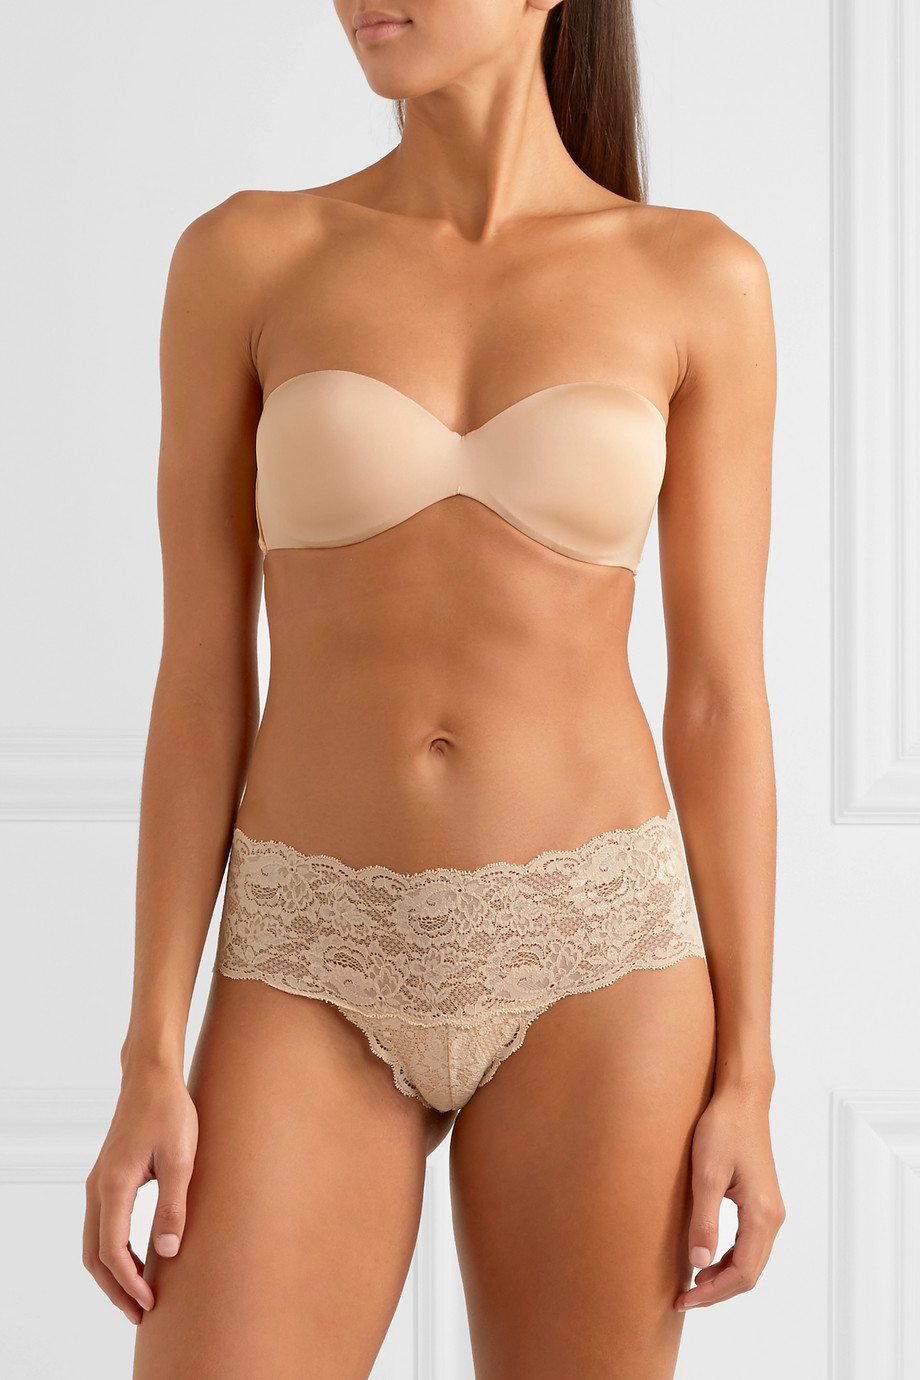 Cosabella Never Say Never Hottie stretch-lace briefs